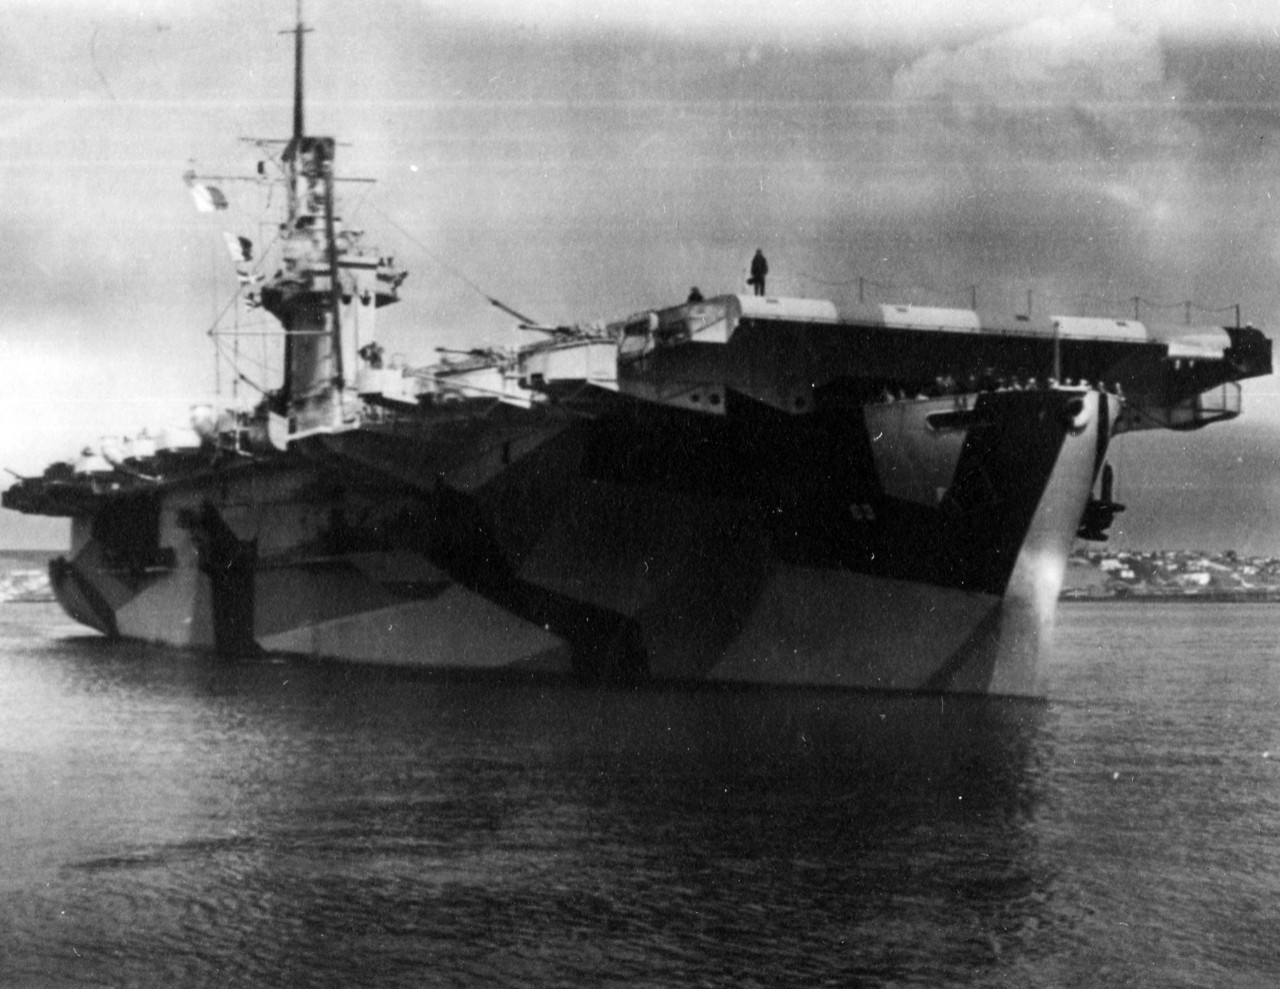 <p>The bow of USS St. Lo (CVE-63), formerly USS Midway. April 7, 1944.</p>